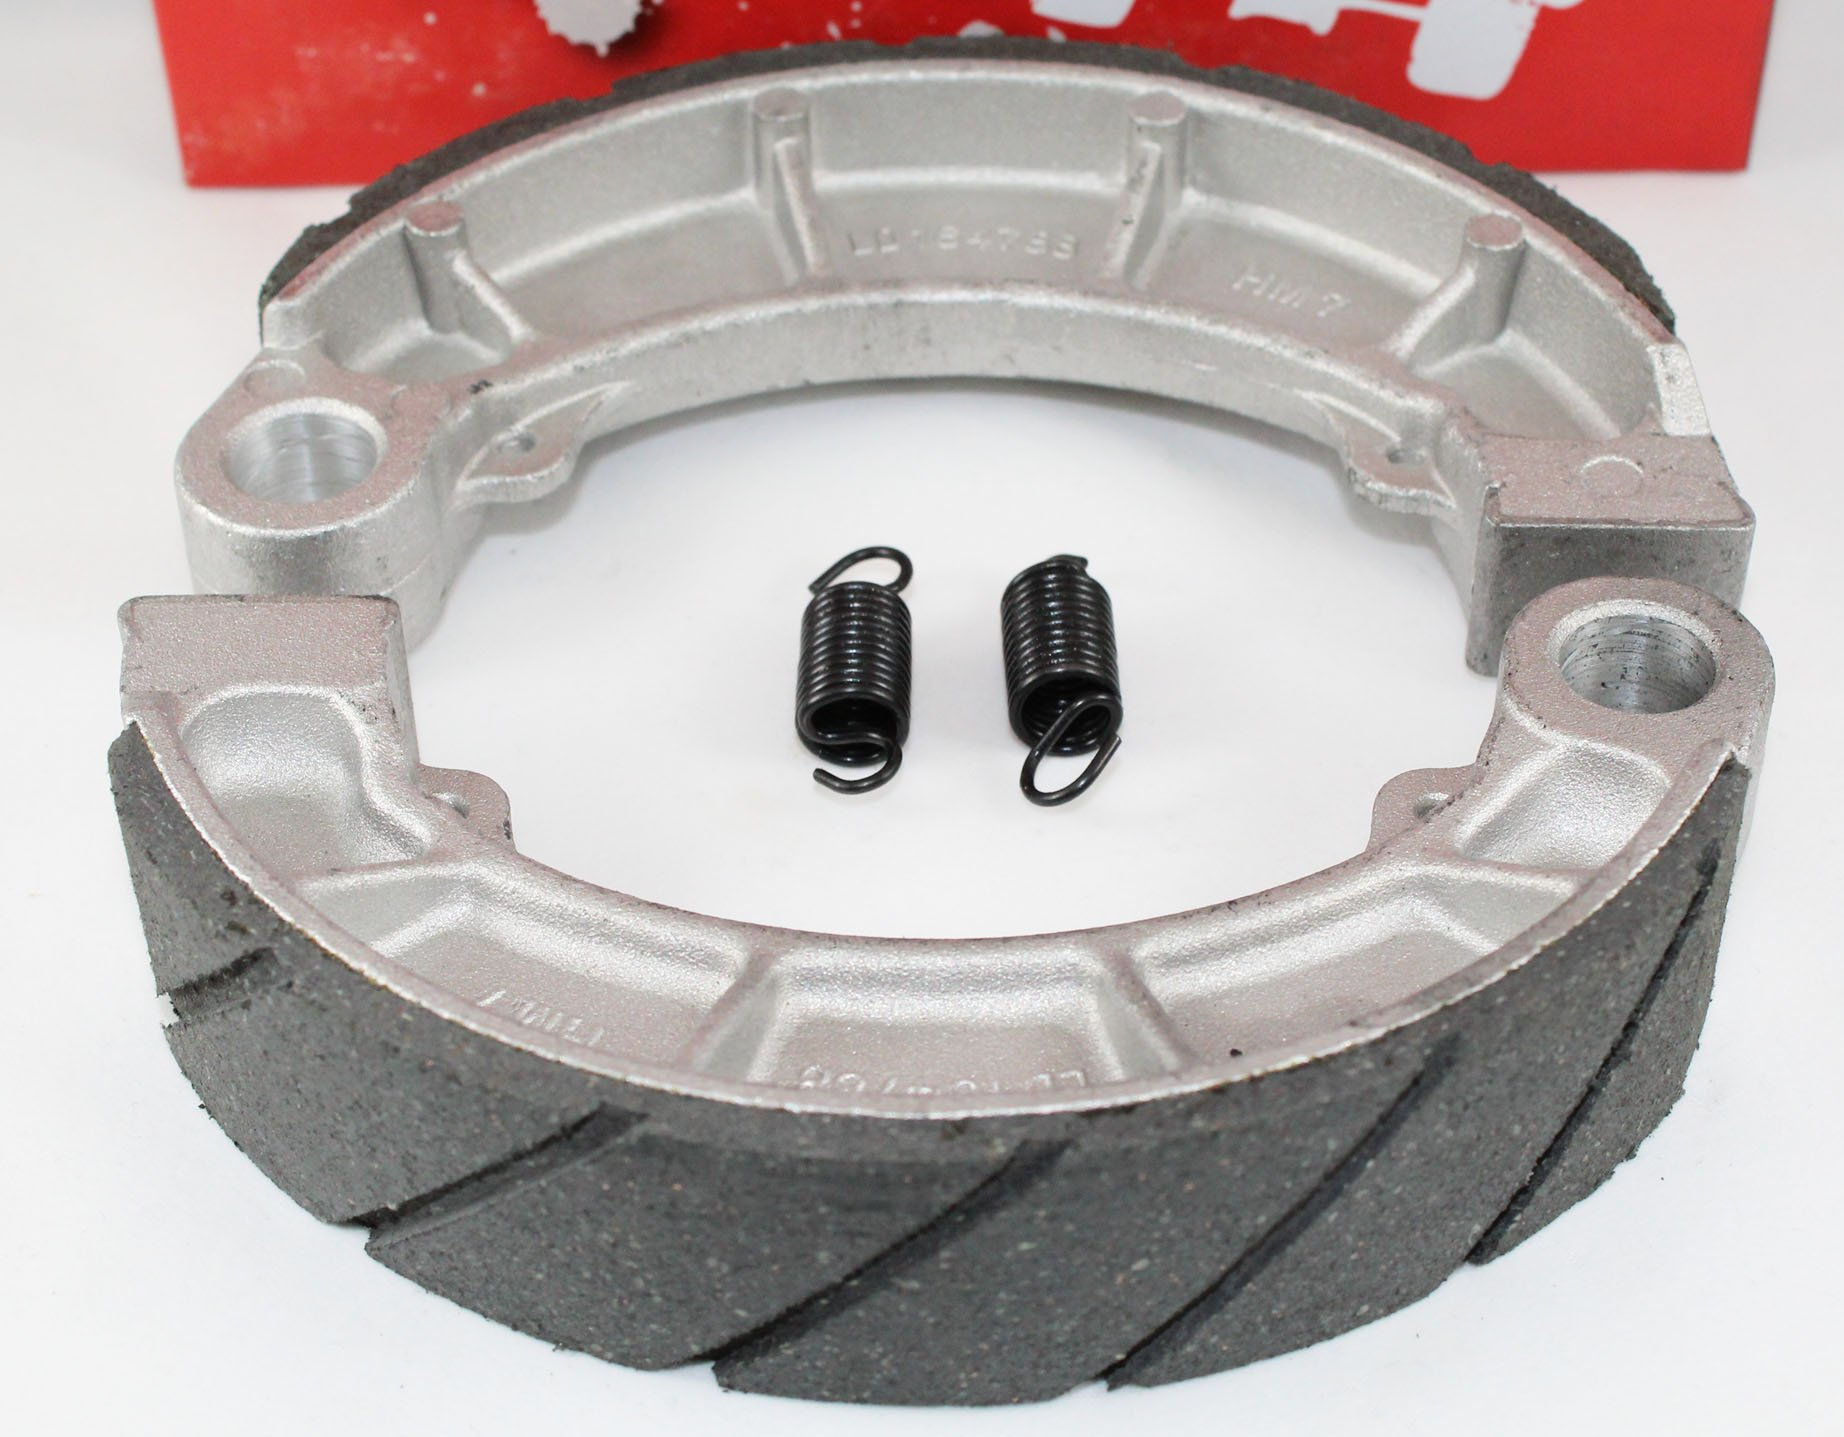 WATER GROOVED Front & Rear Brake Shoes & Springs SET for the Honda 2000-2006 TRX 350 Rancher ATV by Hi-Caliber Powersports Parts (Image #3)